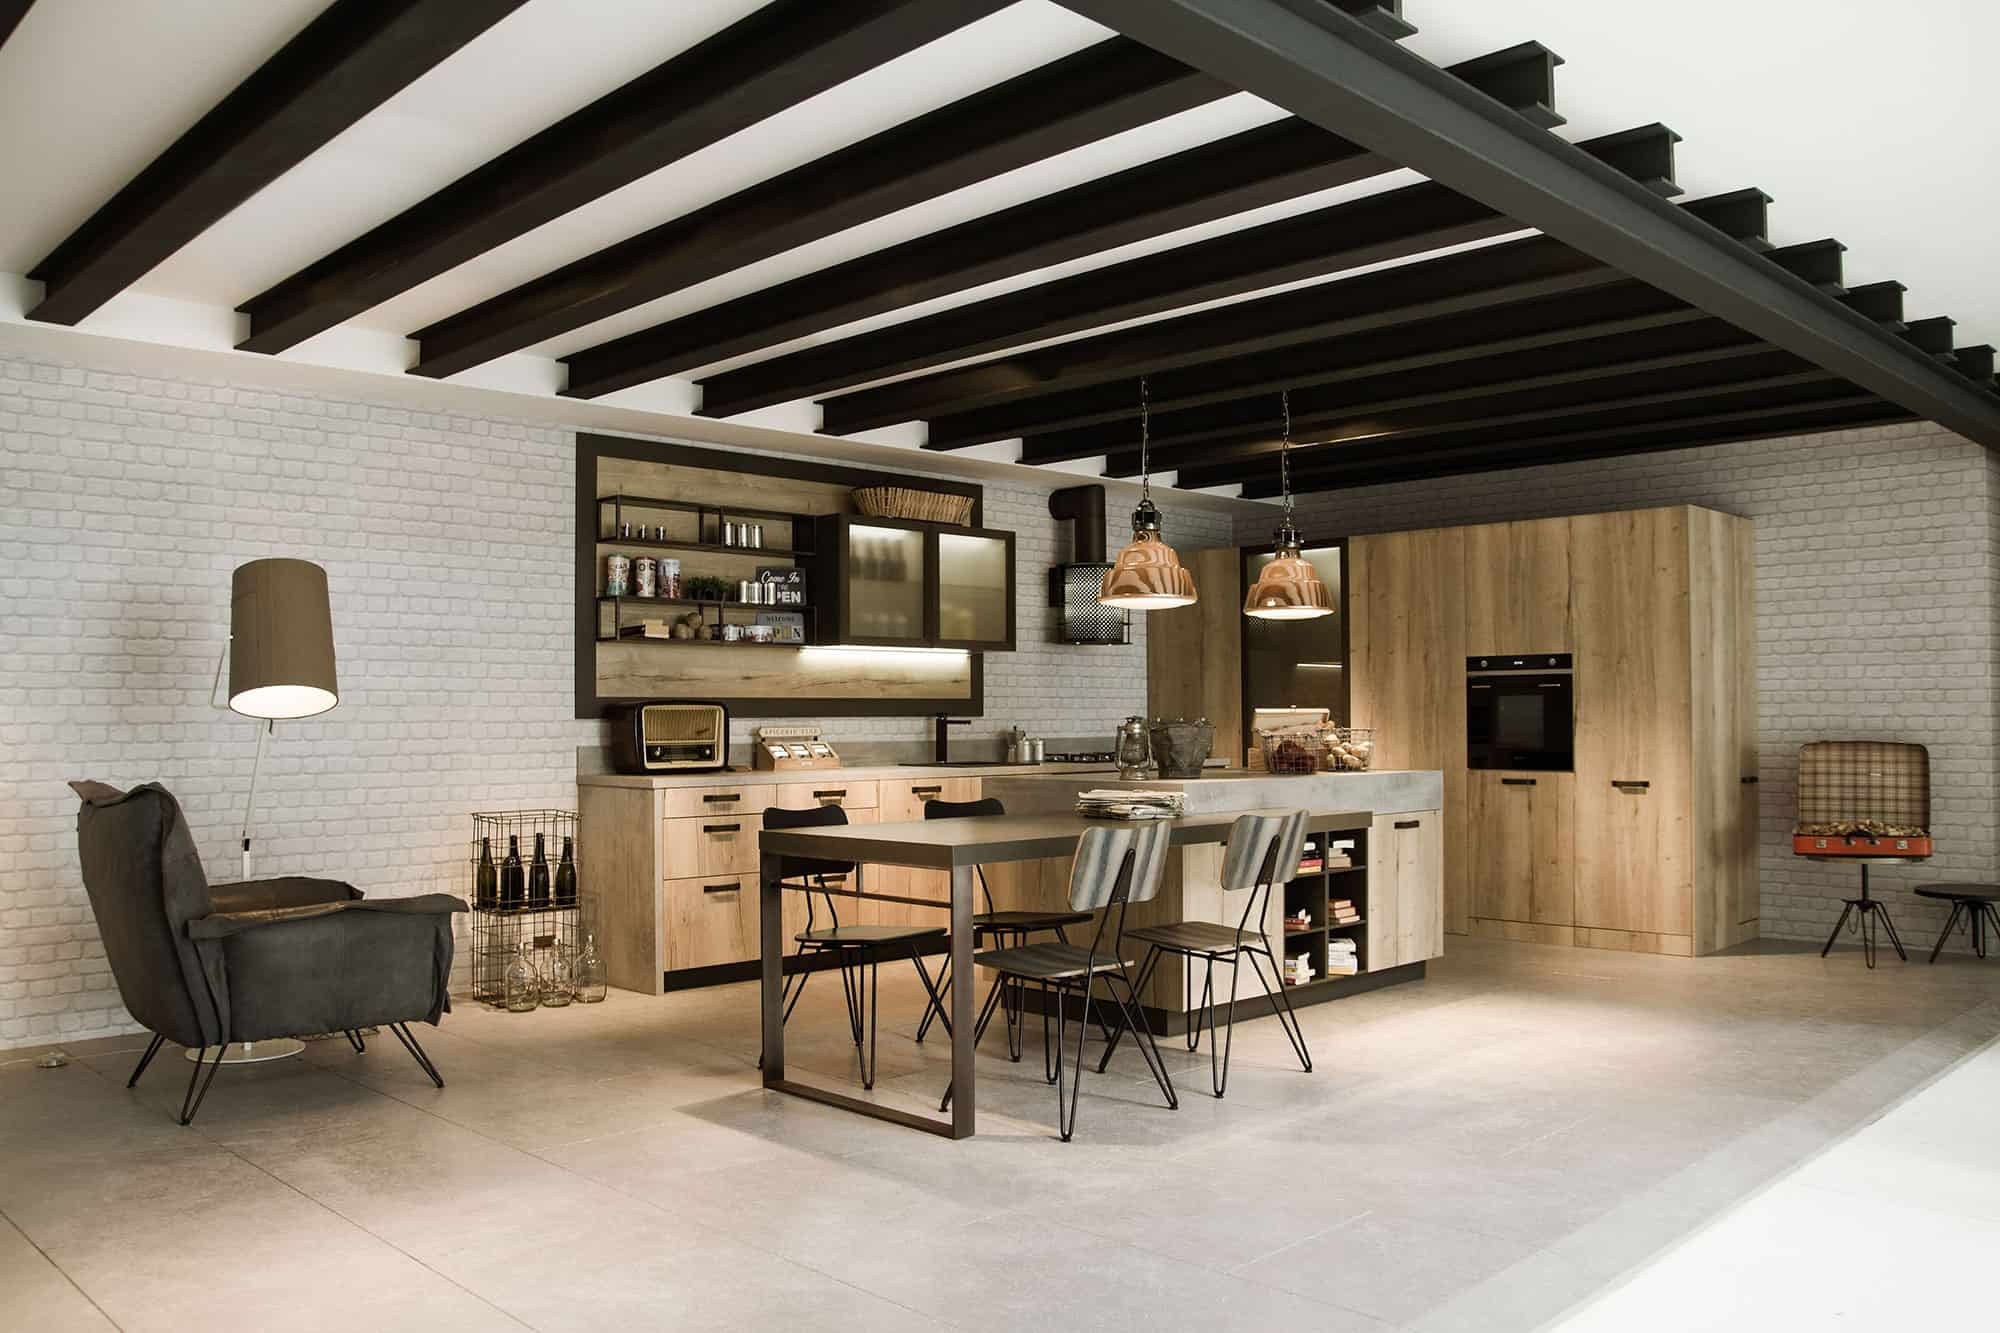 Kitchen design for lofts 3 urban ideas from snaidero for W loft